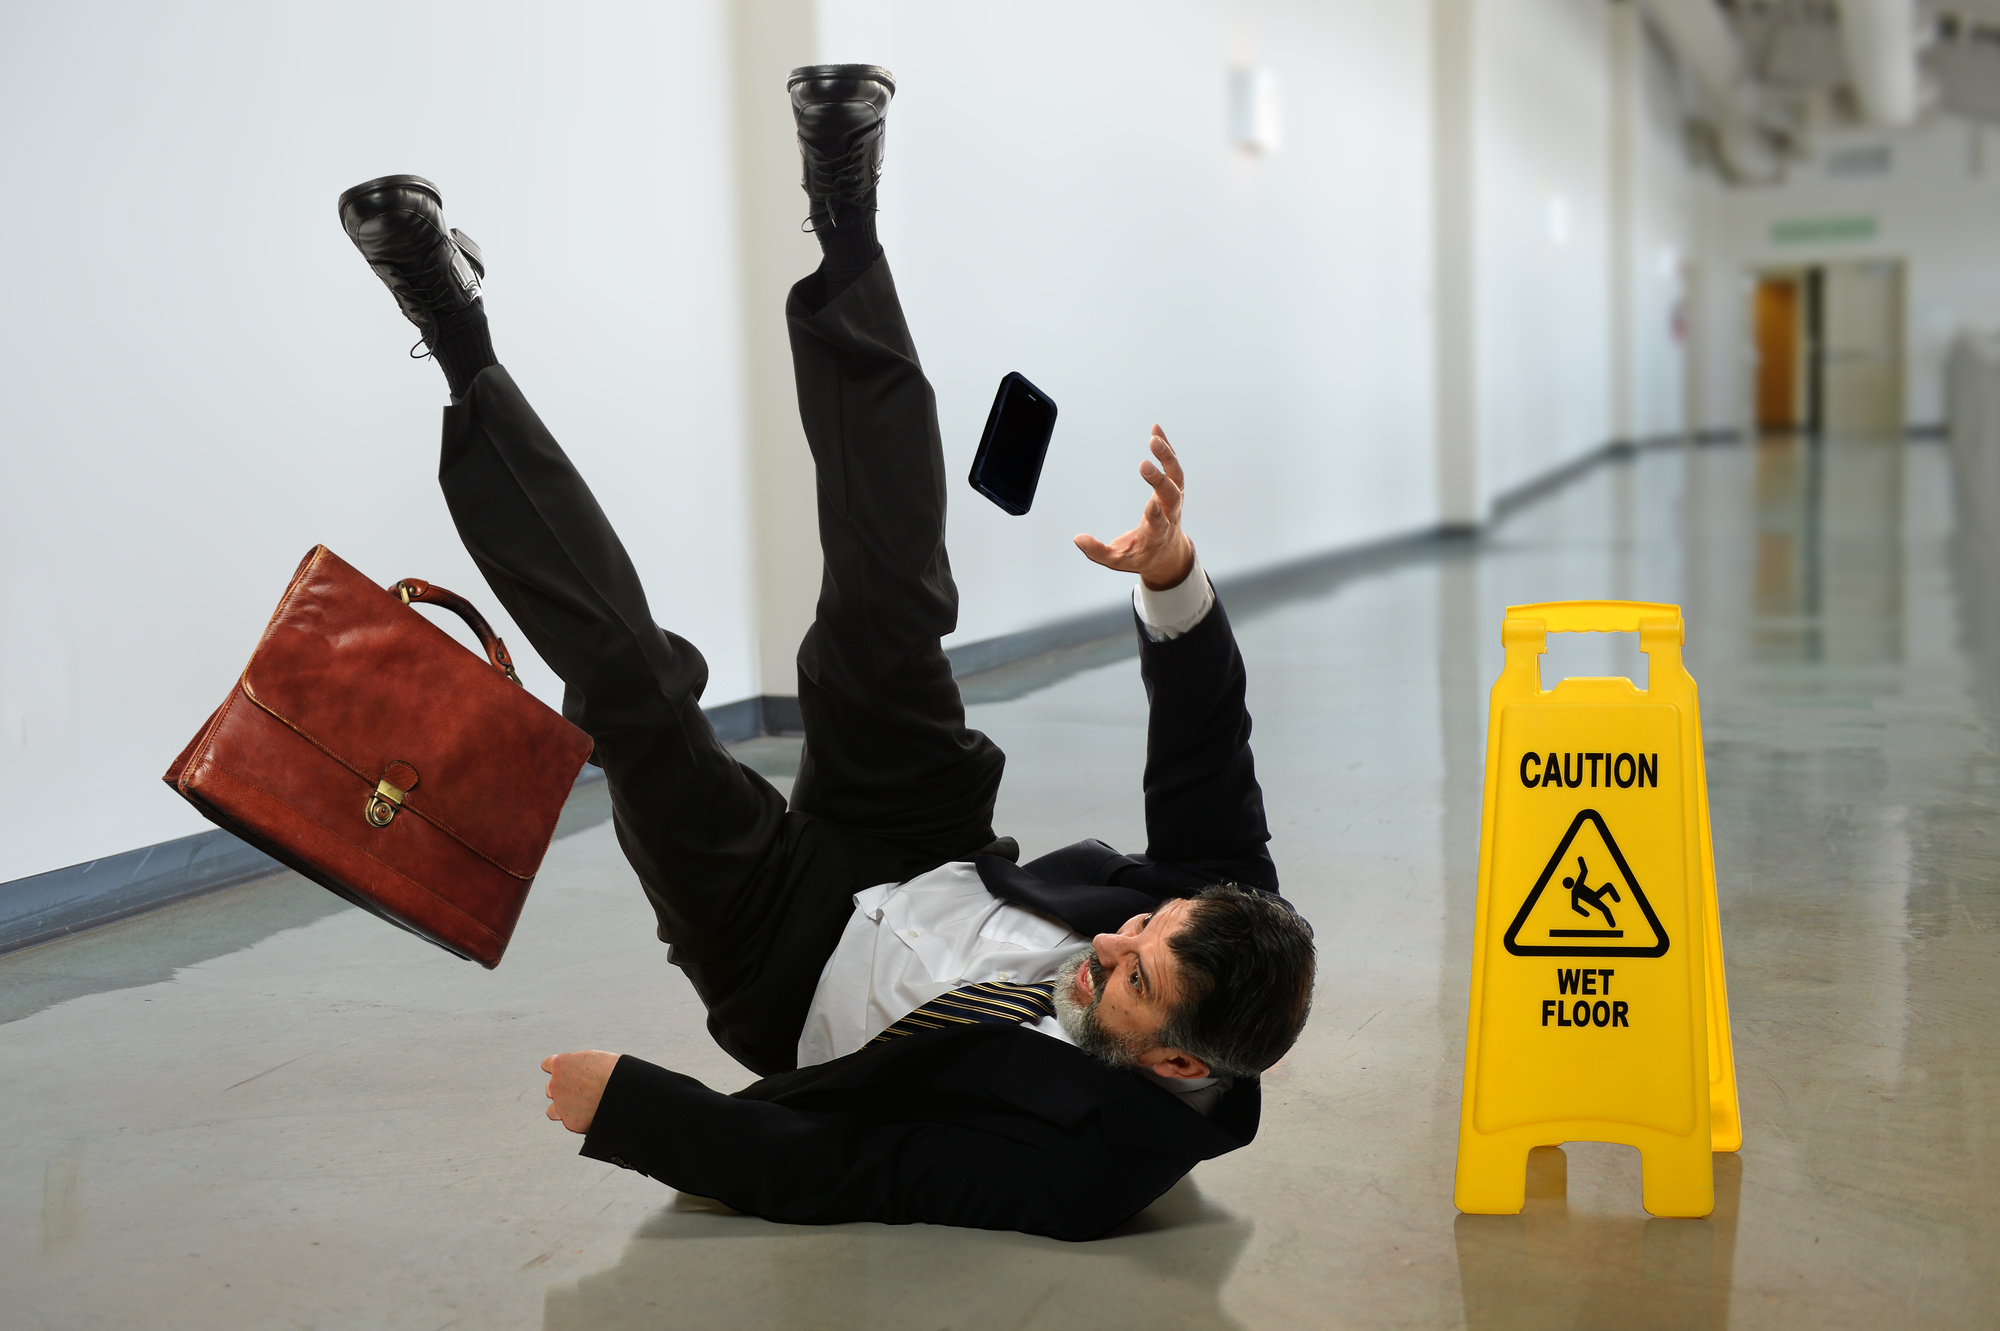 Take Pictures after a Slip and Fall Accident